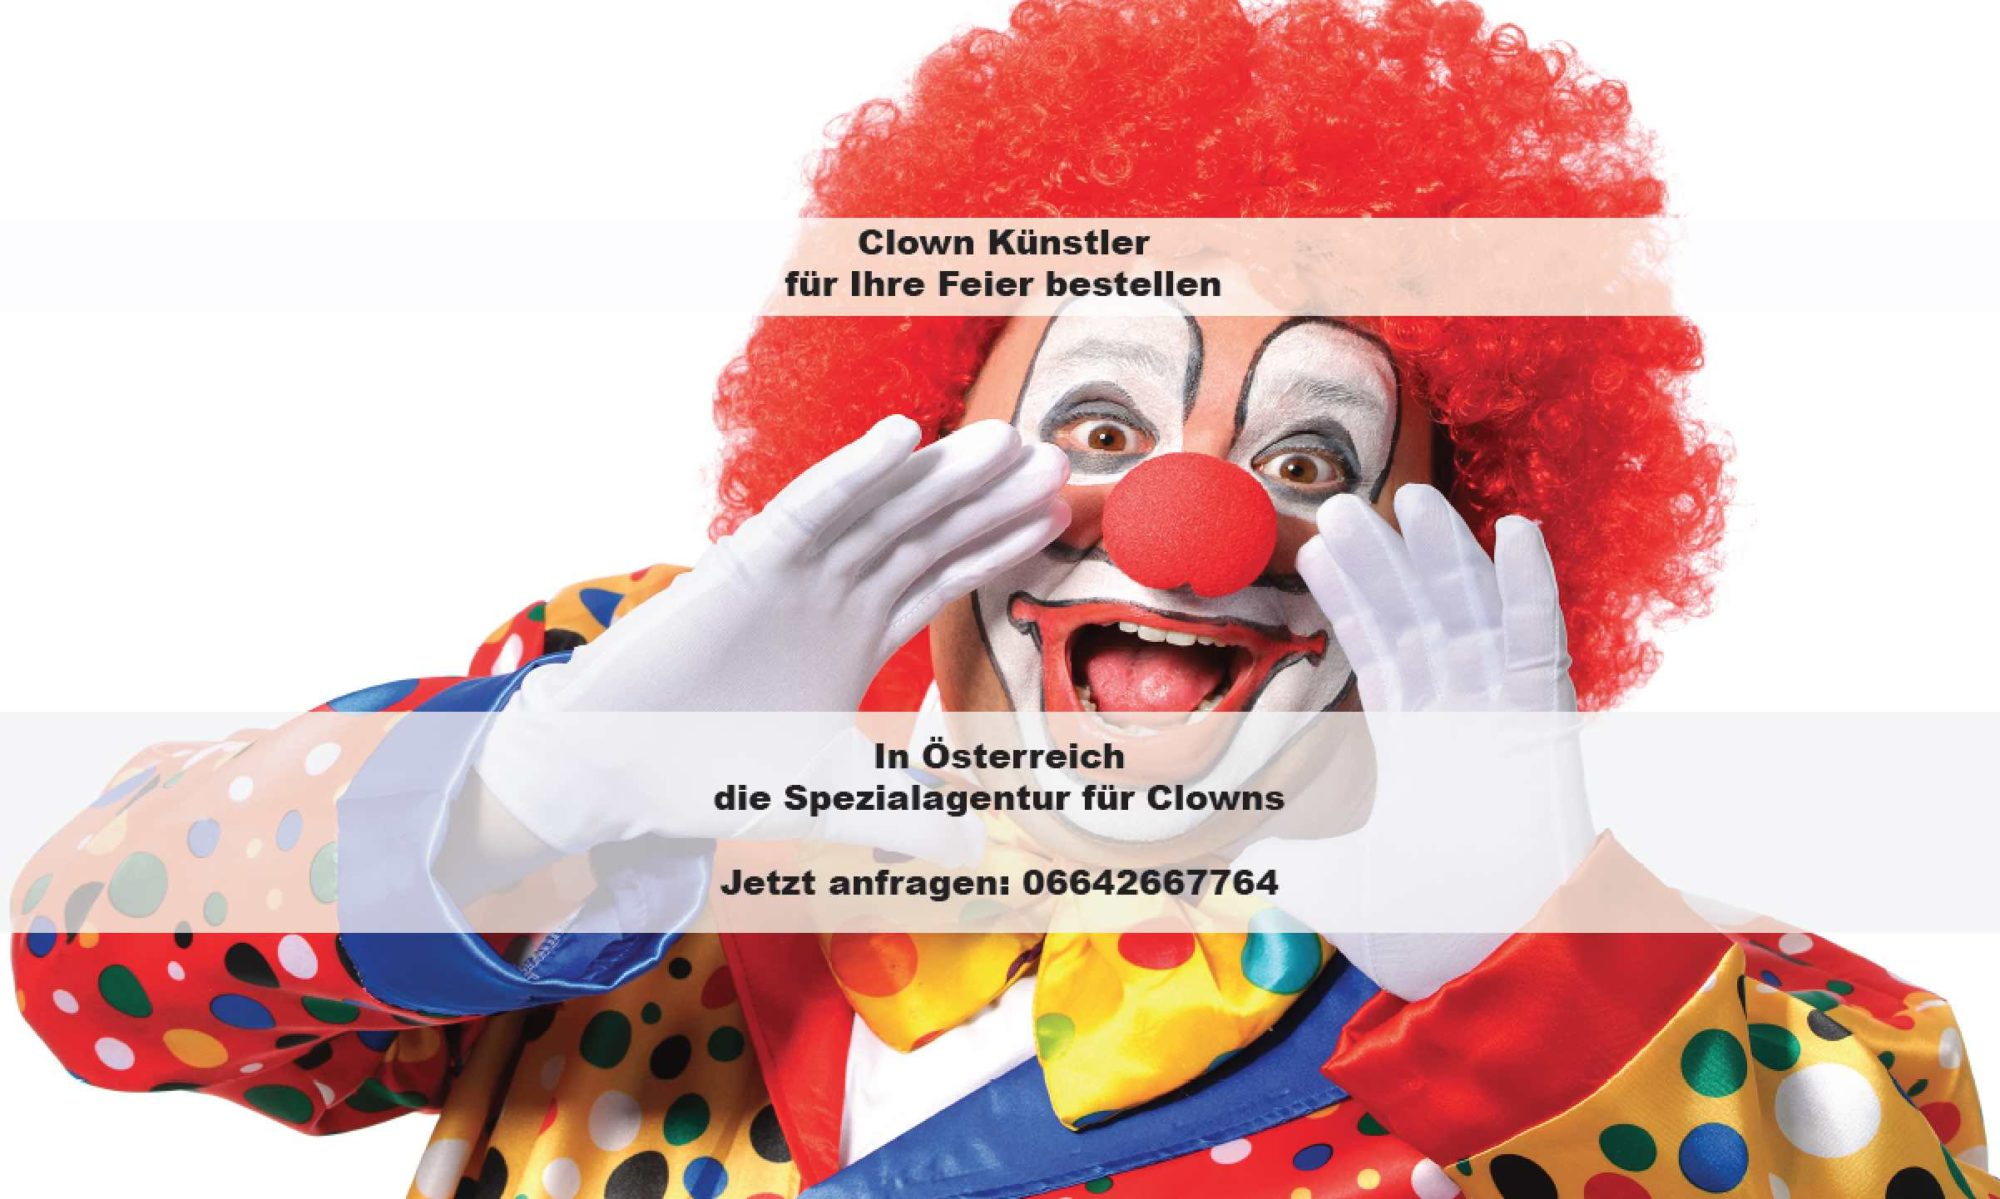 Clown für Ihre Feier bestellen, Clown Wien, Clown Graz, Clown Salzburg, Clown Linz, Clown St.Pölten, Clown Eisenstadt, Clown mieten, Clown Kindergeburtstag, Clown Kindergarten, Clown Show, ZauberClown Show, Ballon Modellage